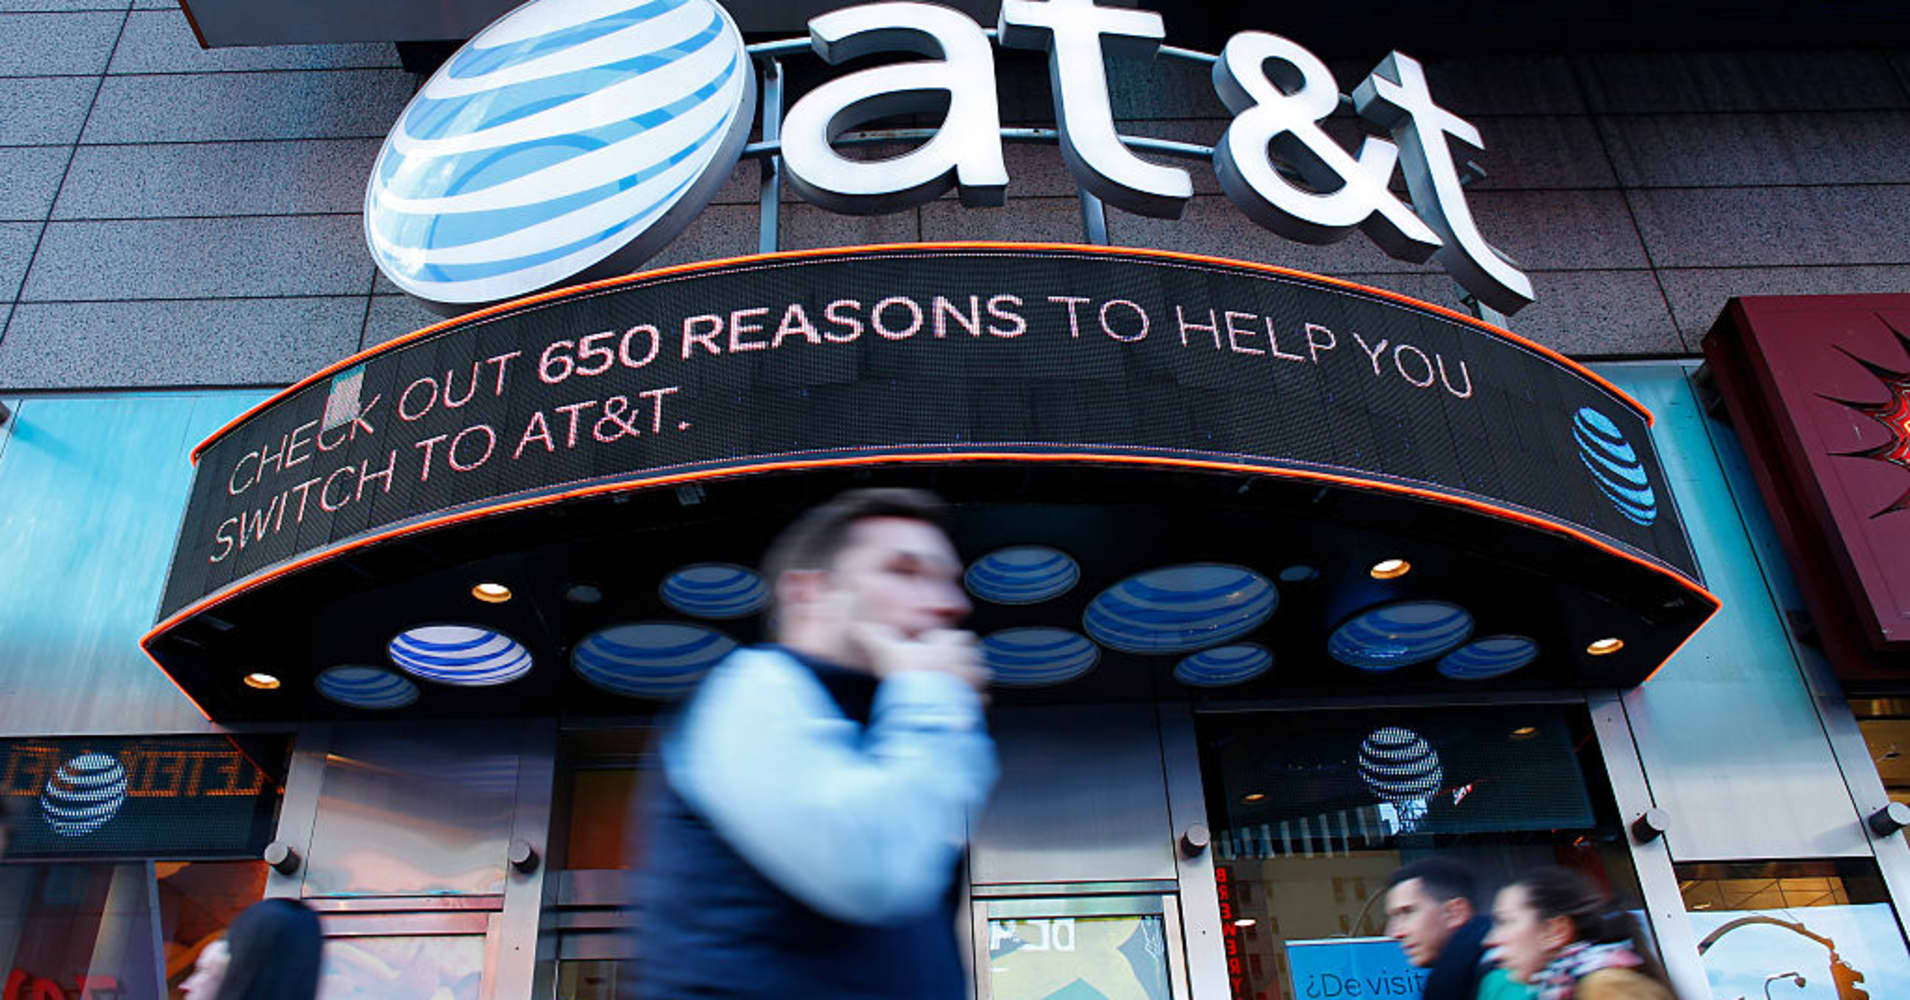 AT&T shares stumble after rivals T-Mobile, Verizon pick up new subscribers